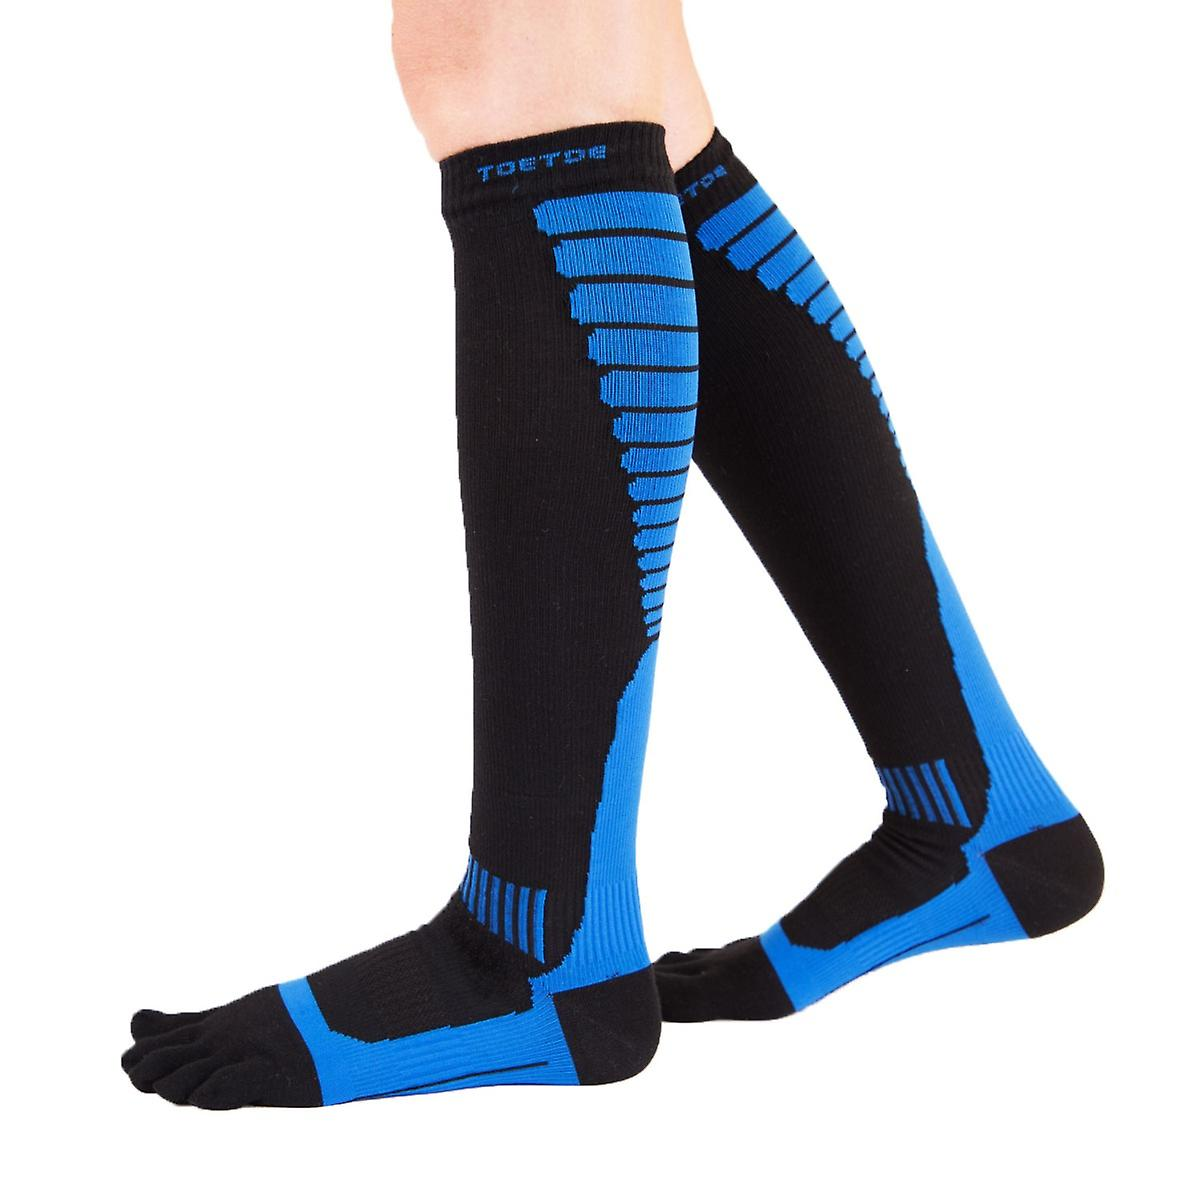 SPORTS - Compression Knee-High